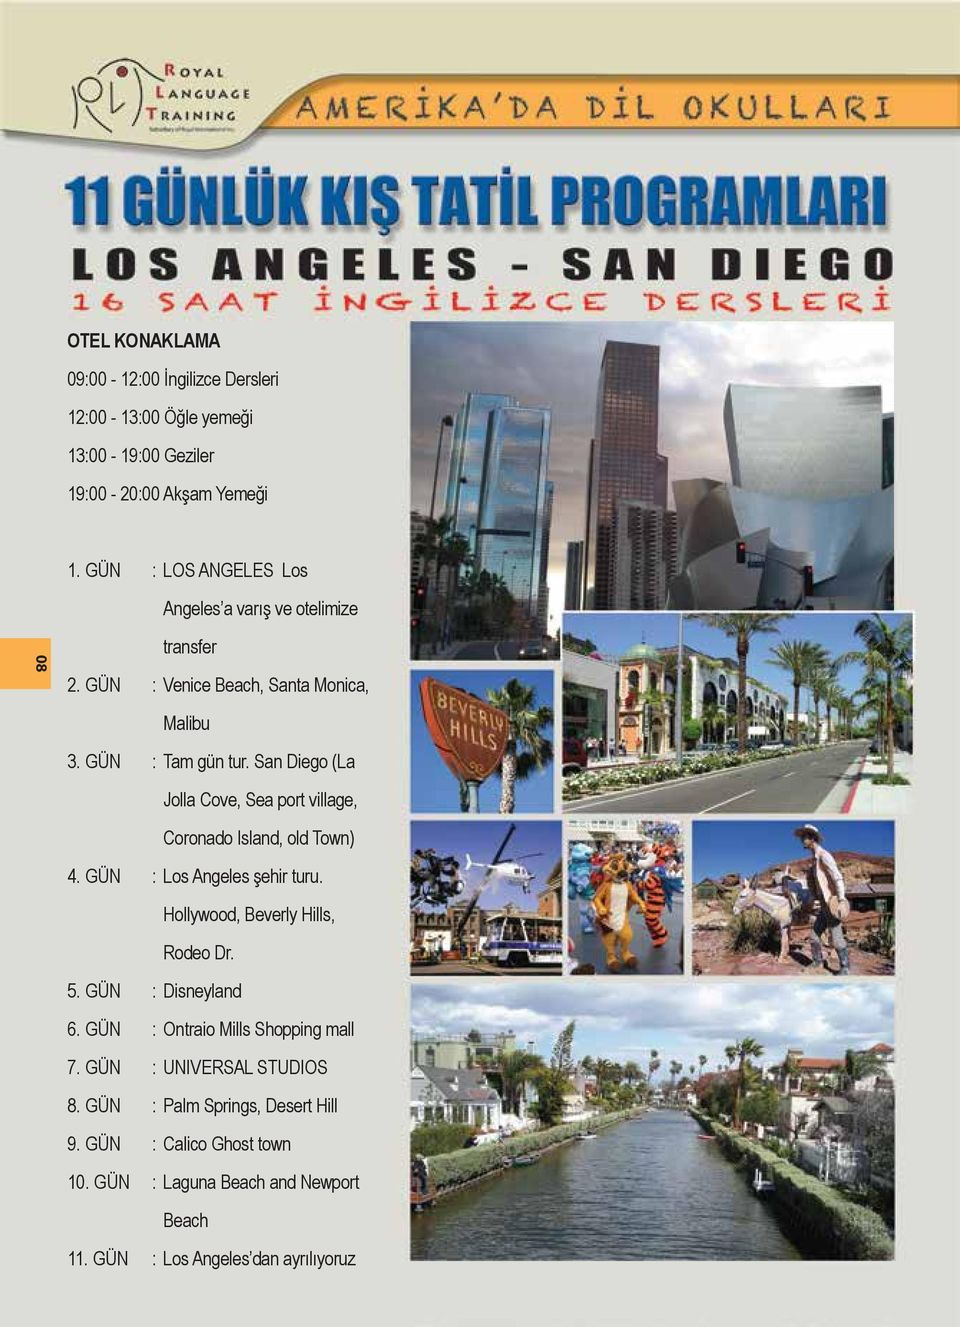 San Diego (La Jolla Cove, Sea port village, Coronado Island, old Town) 4. GÜN : Los Angeles şehir turu. Hollywood, Beverly Hills, Rodeo Dr. 5.